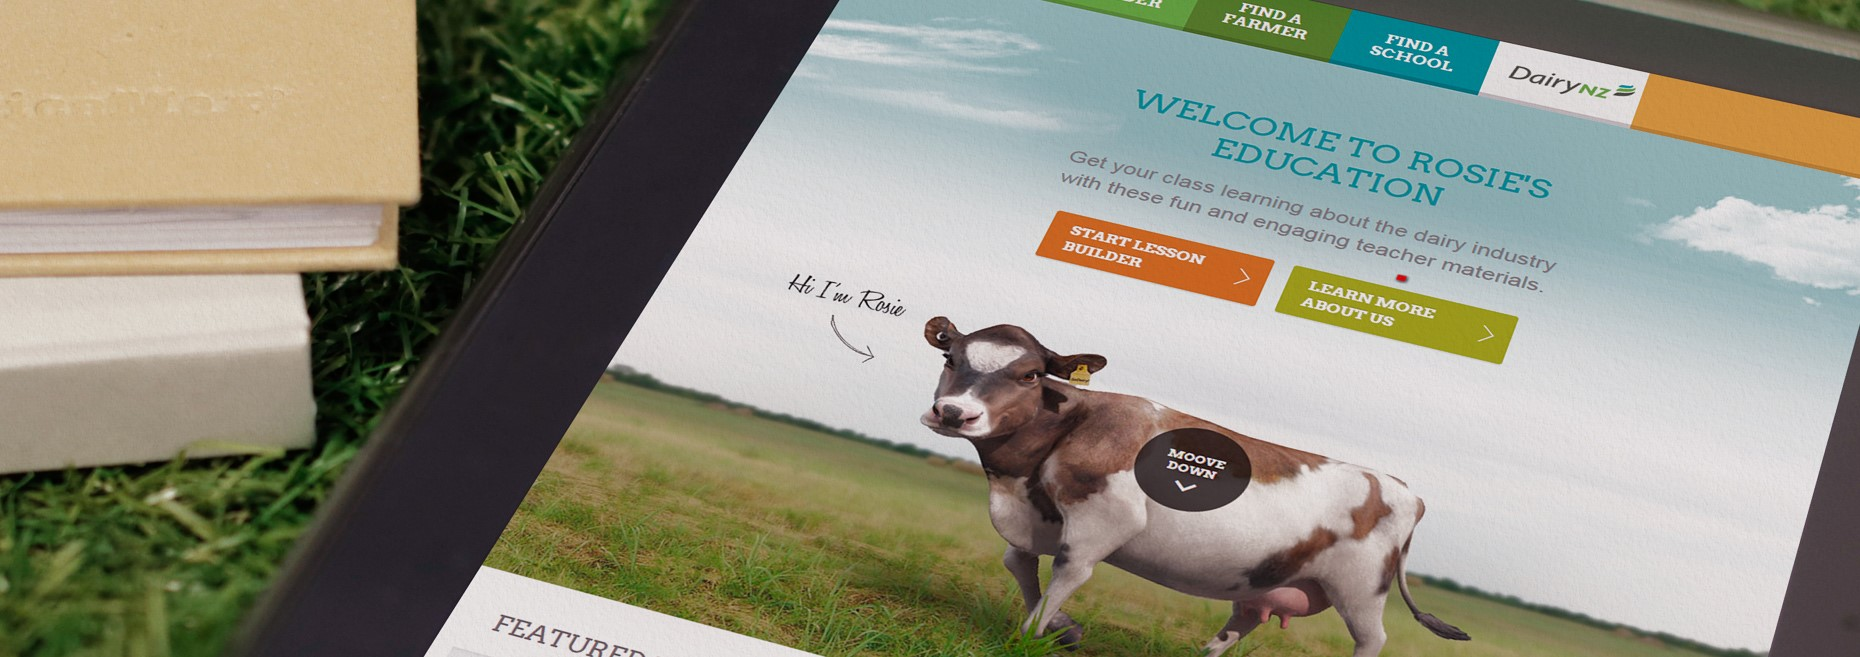 DairyNZ Rosie's Education Homepage